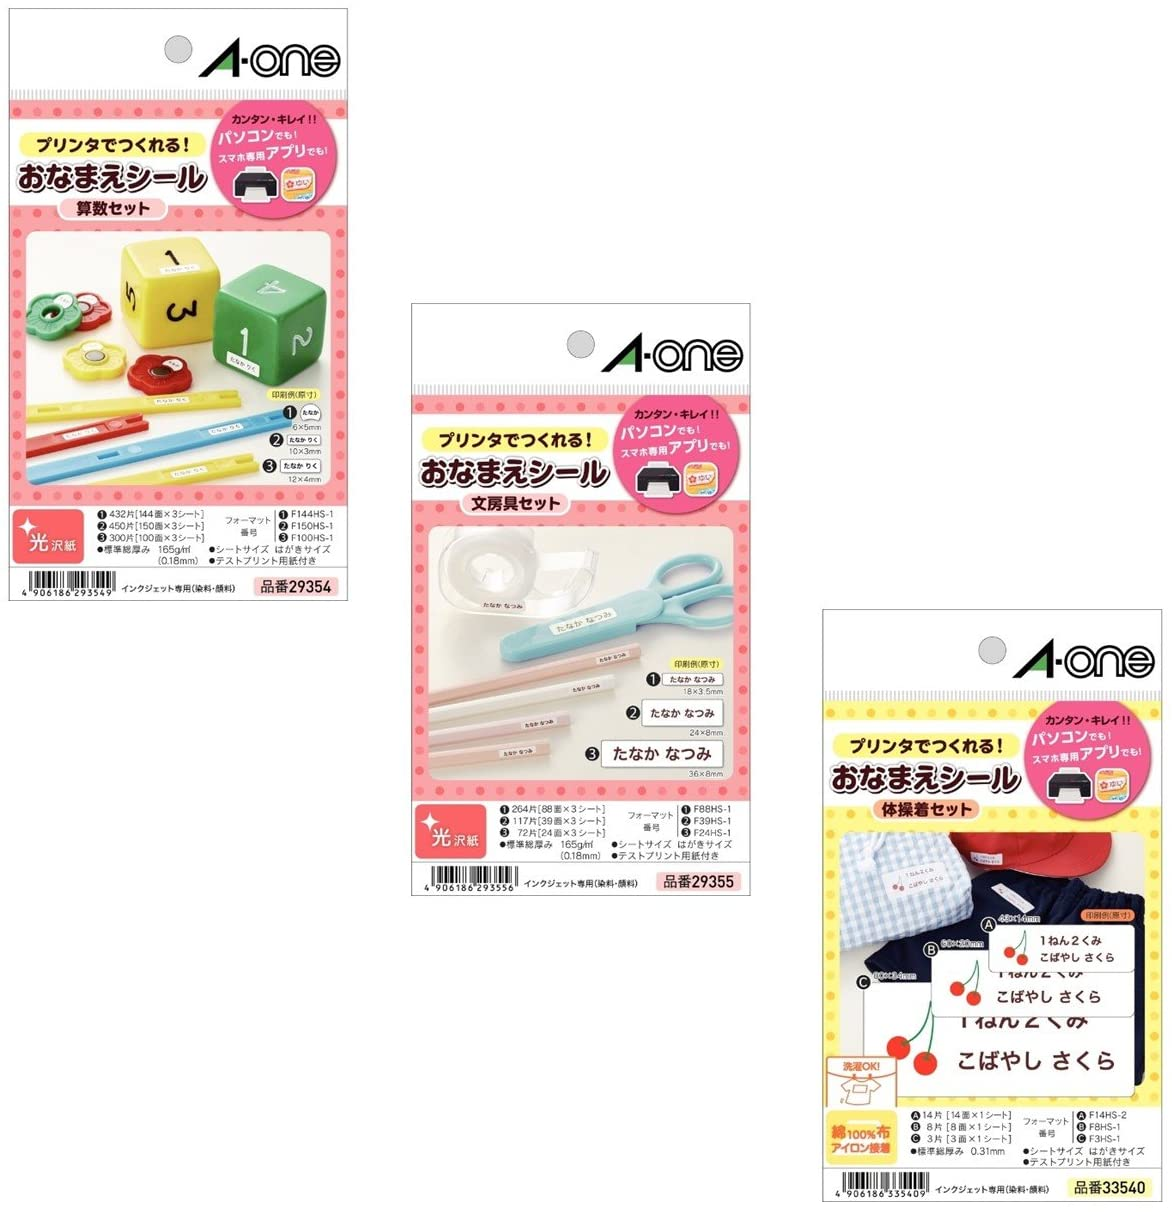 A-One your name seal elementary school students for admission preparation set 80292